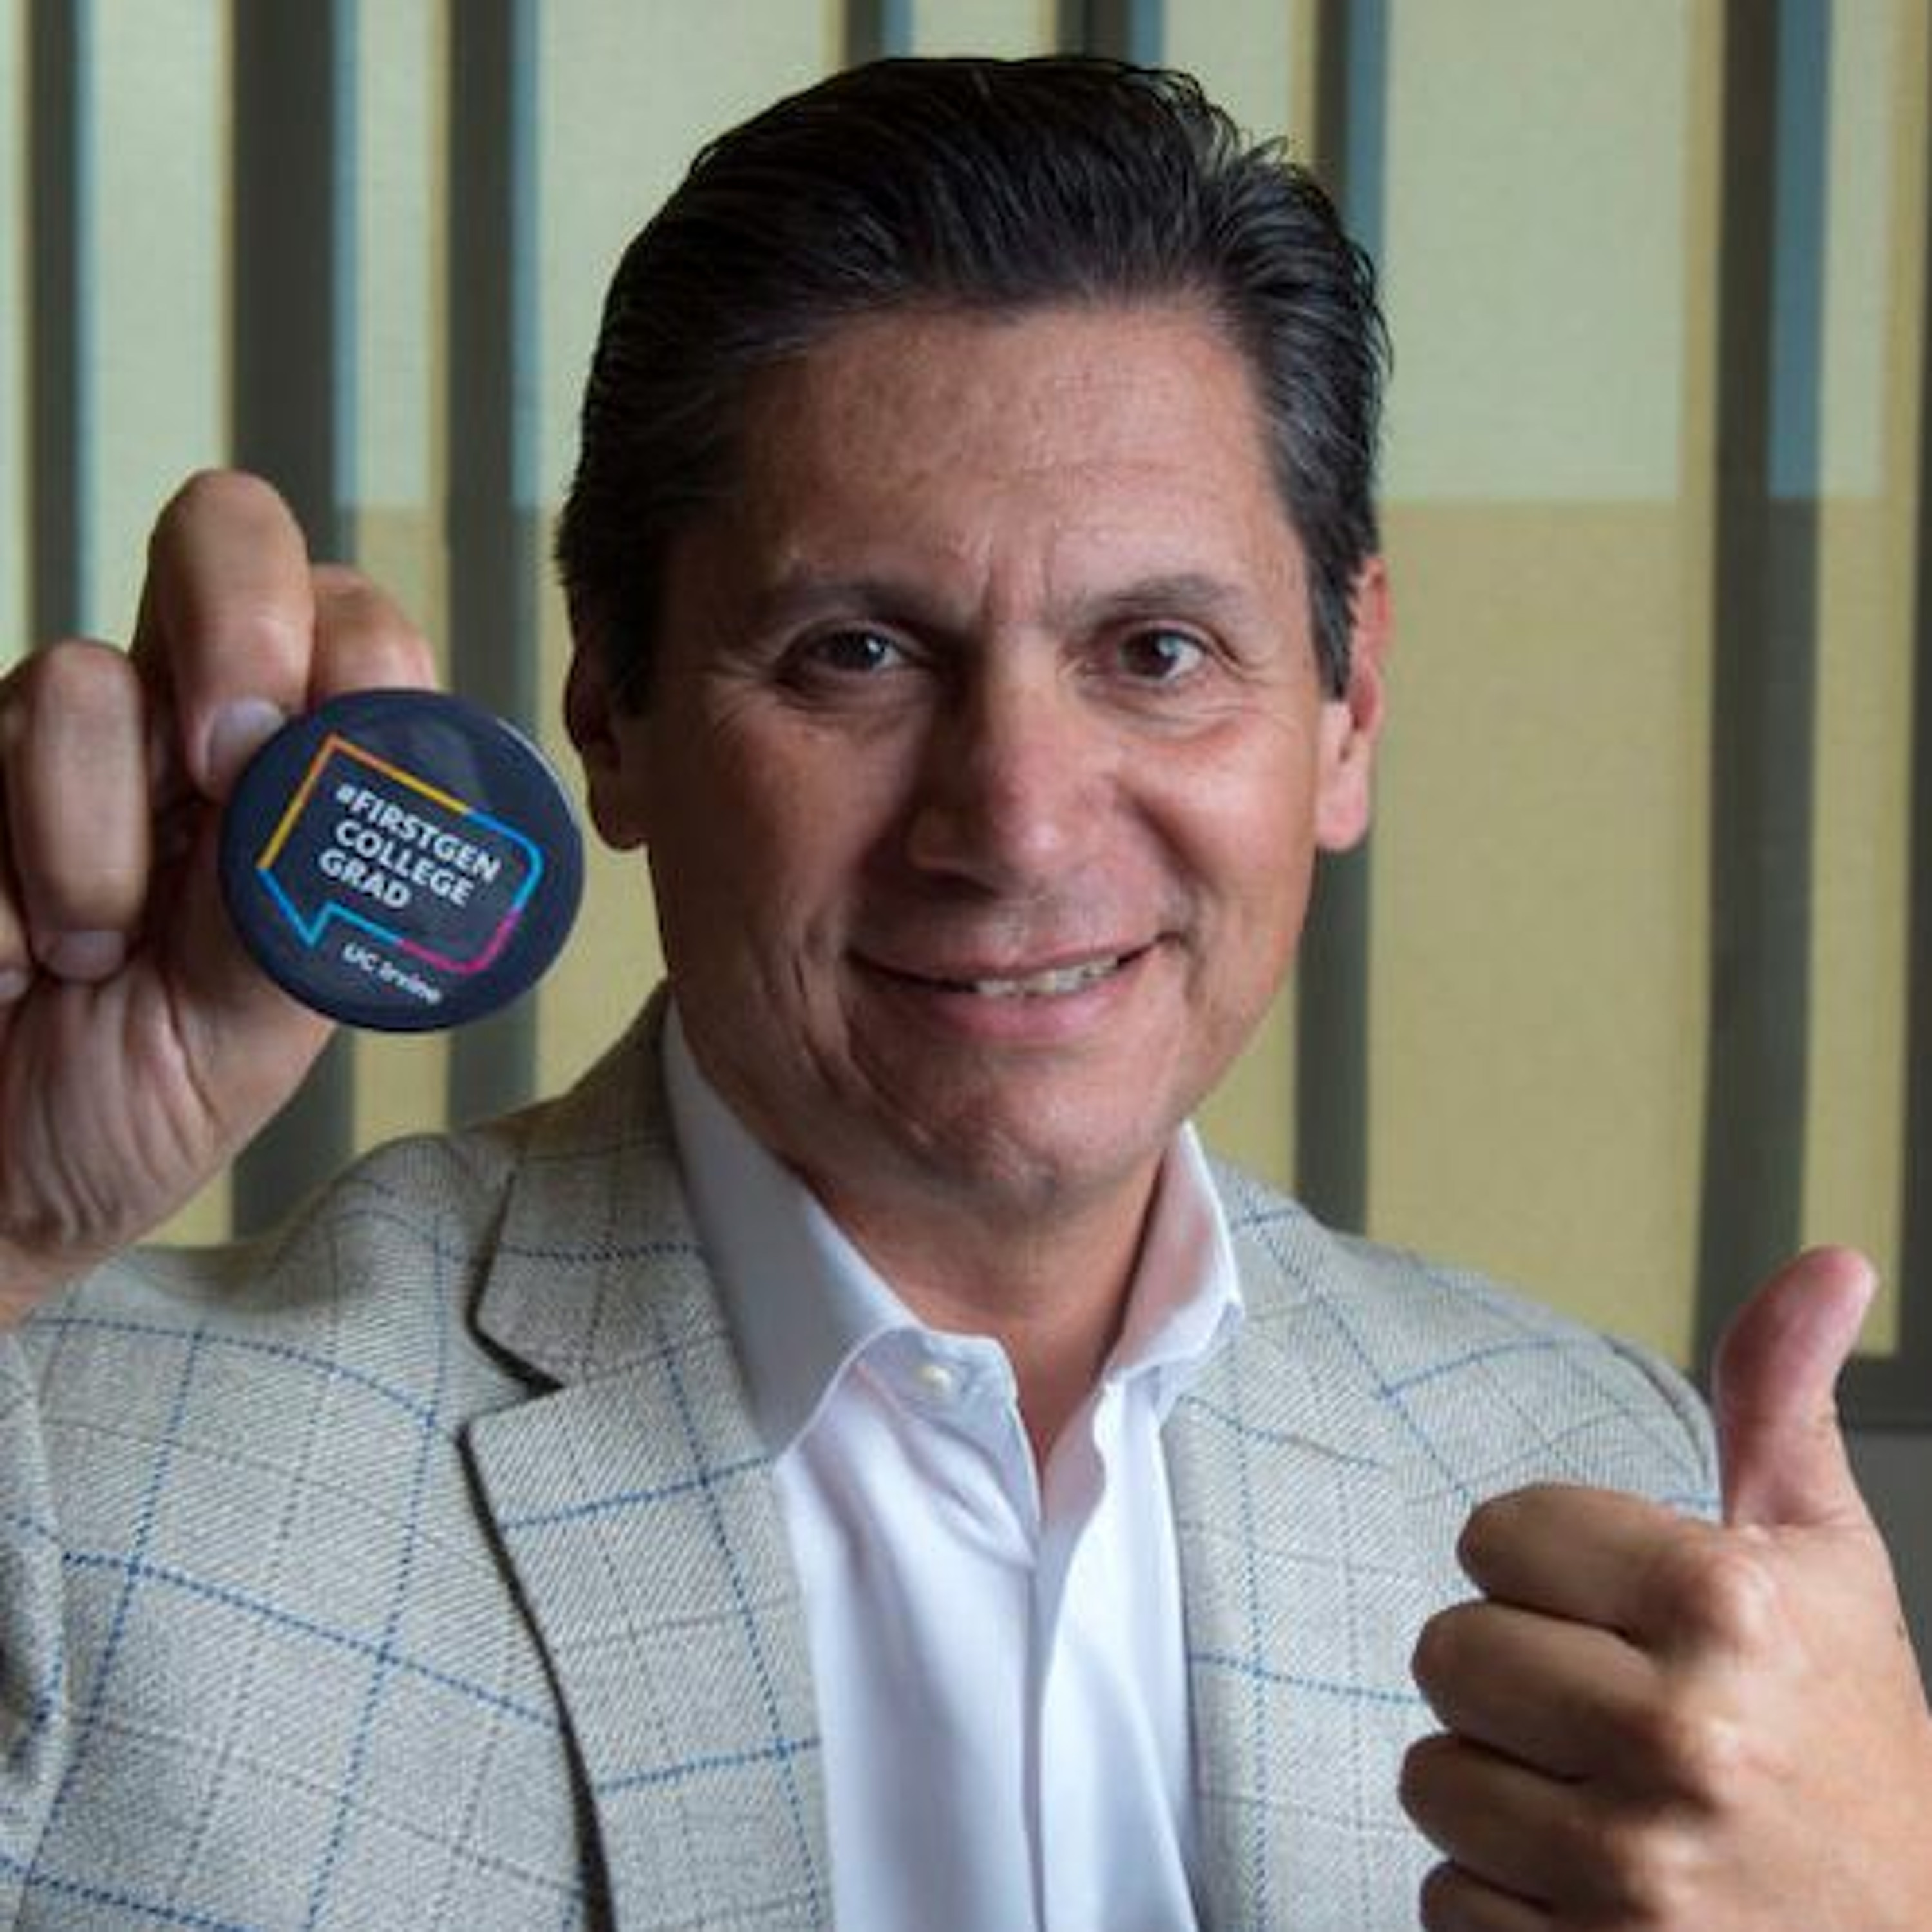 UCI Podcast: Eloy Ortiz Oakley ensures access for first generation students